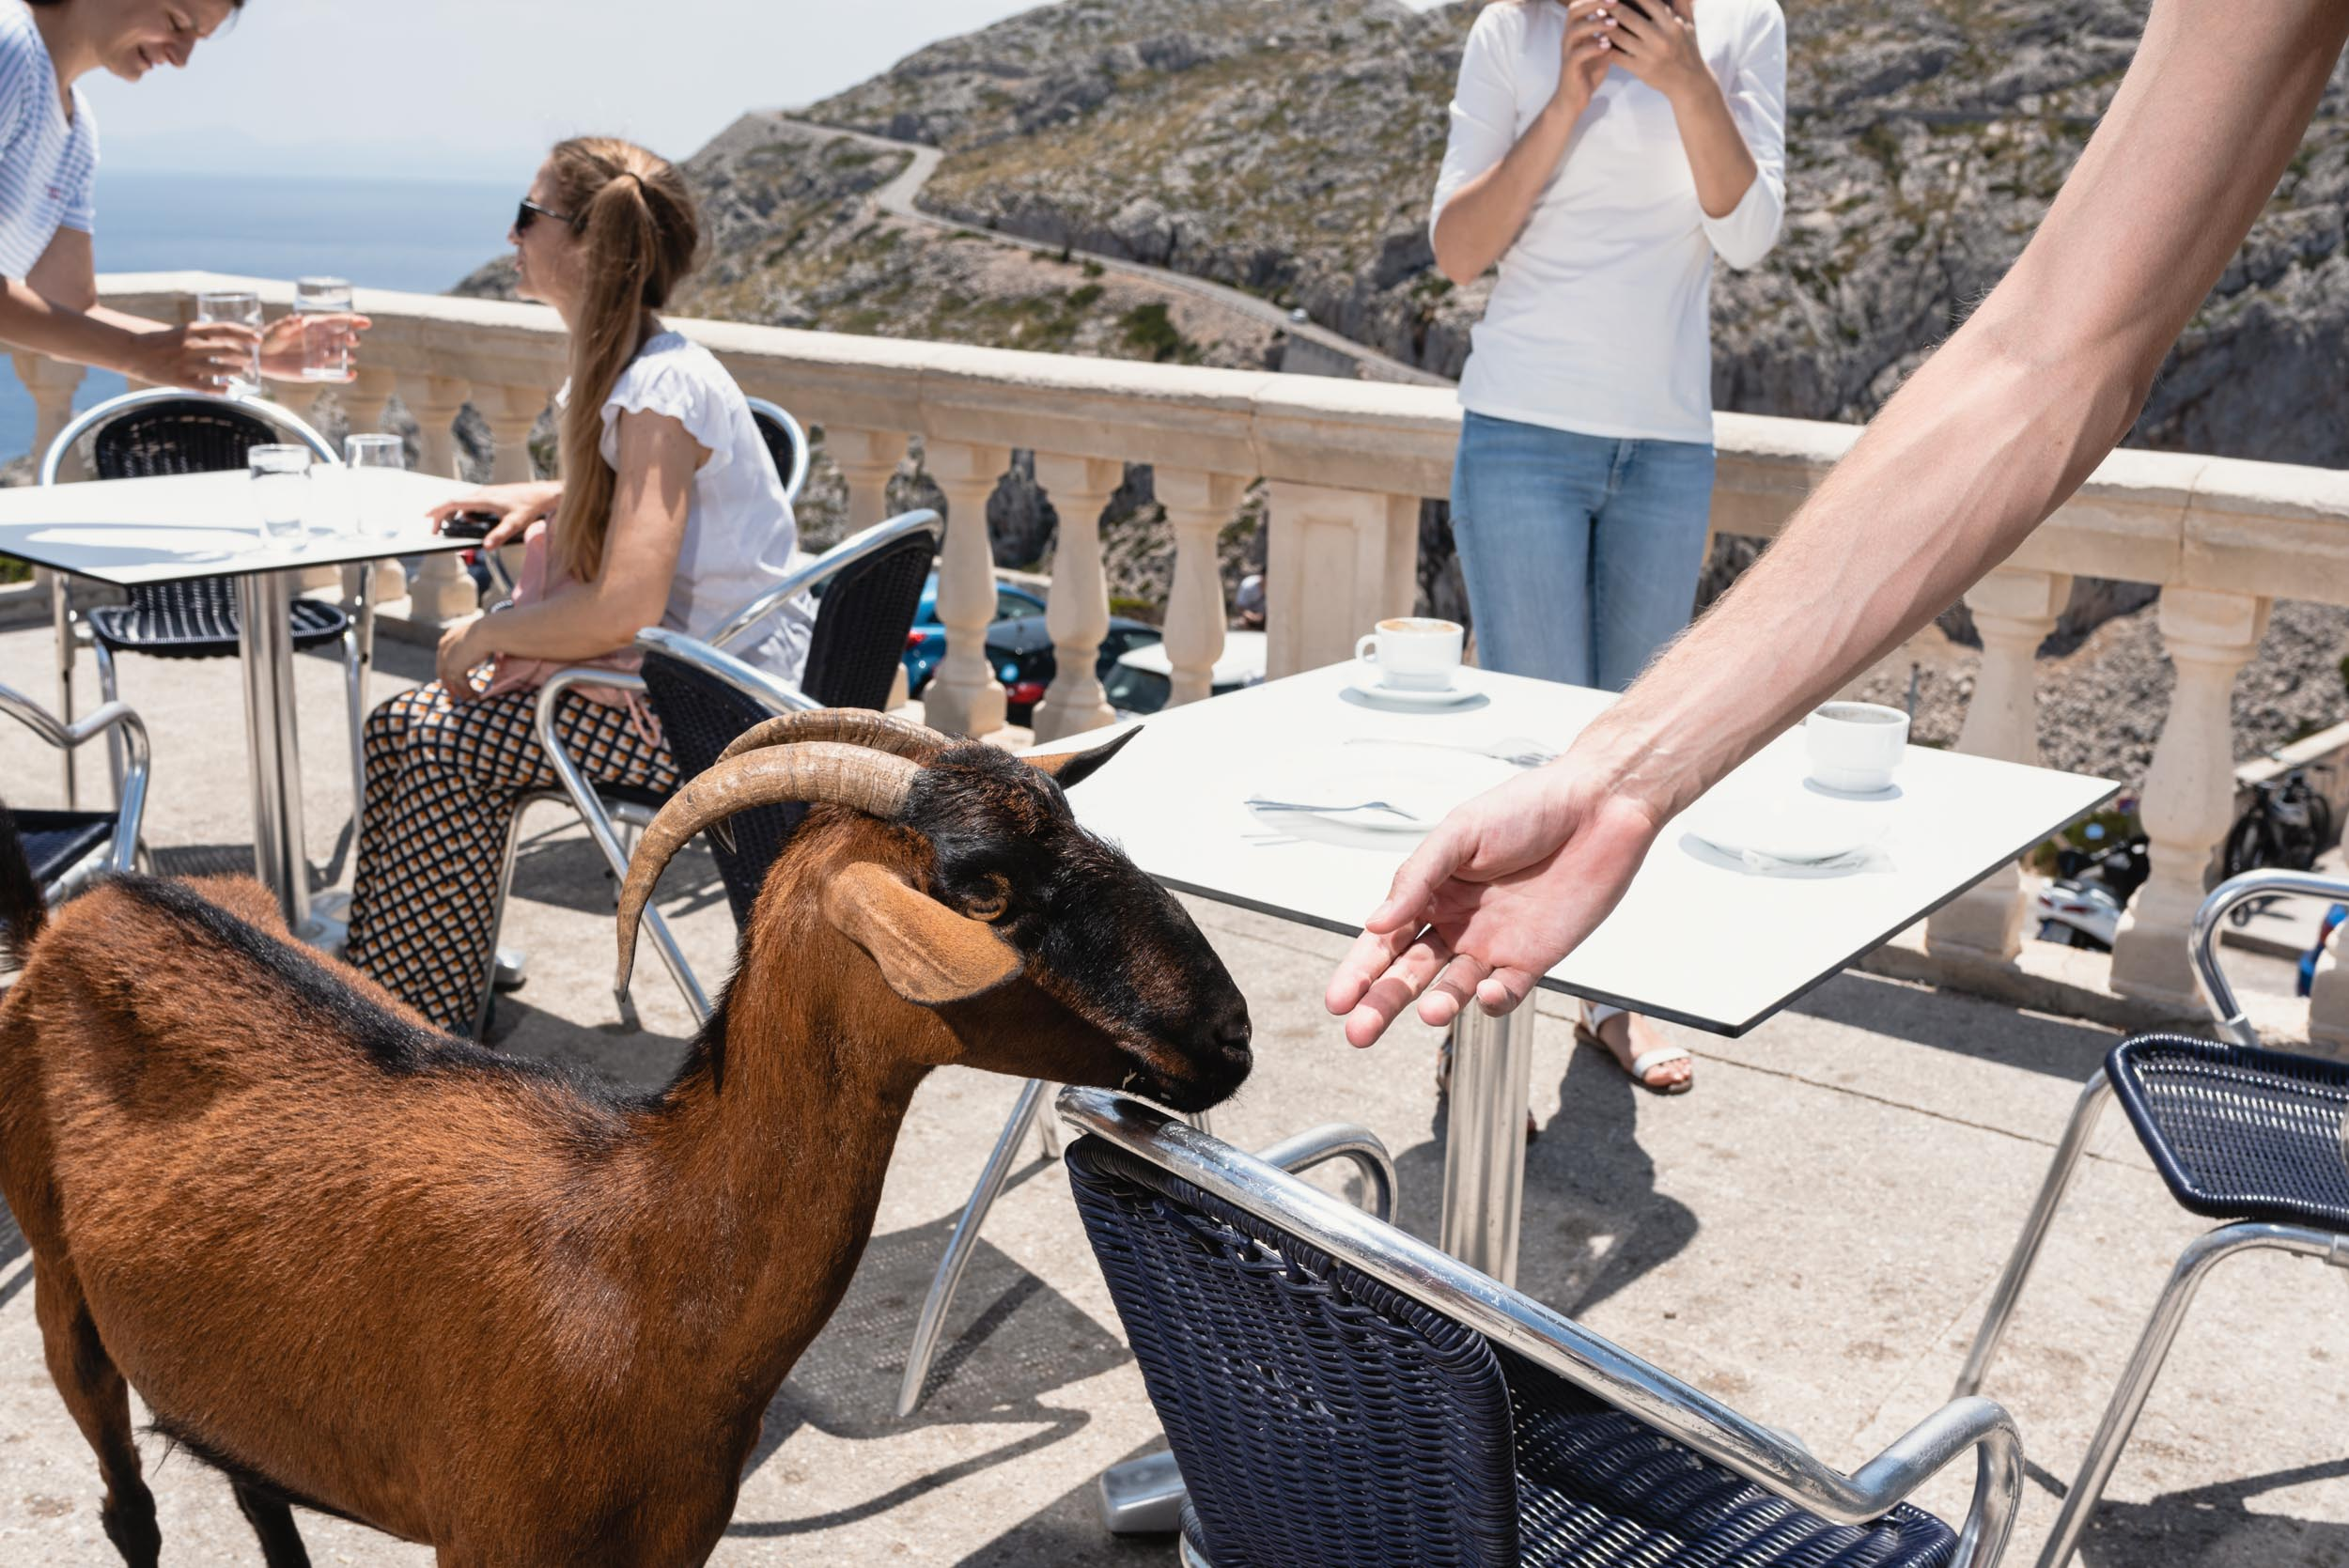 Goat at restaurant patio Torre De Paradis